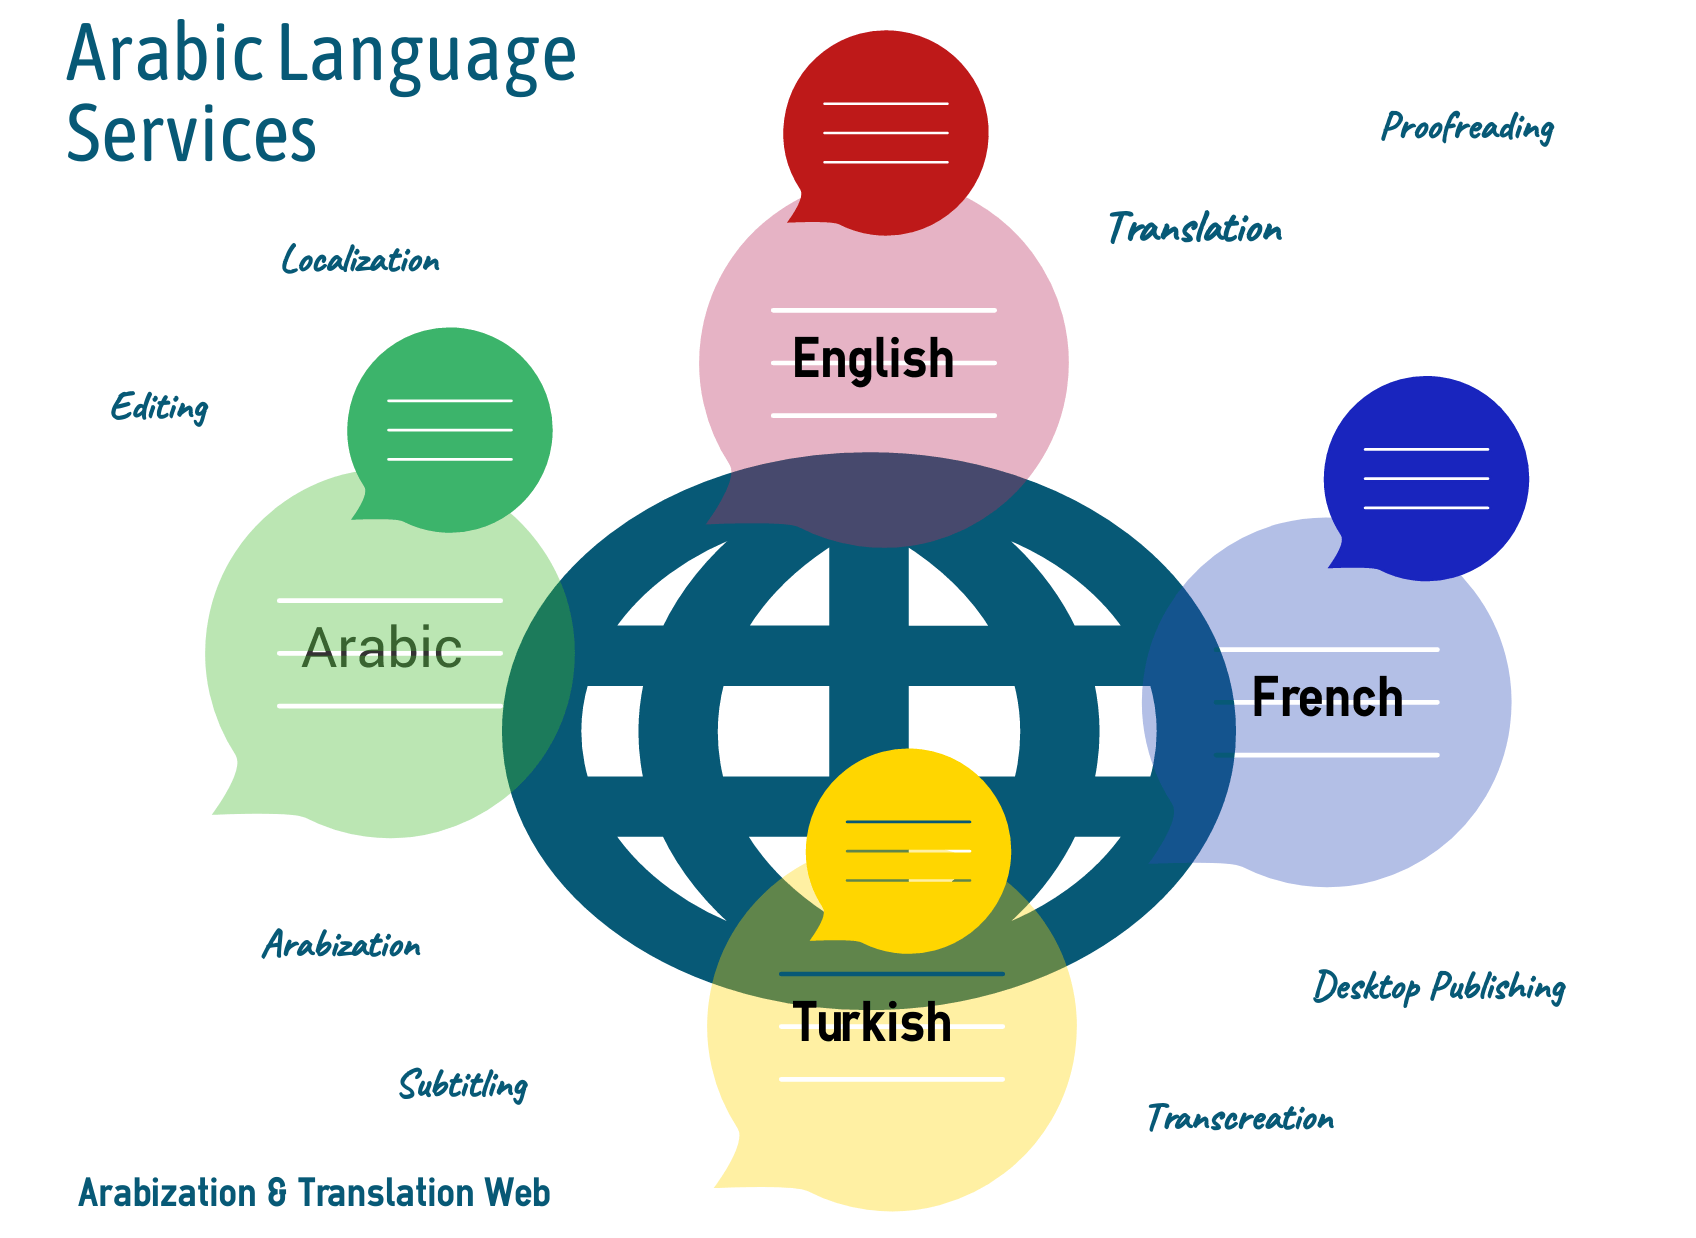 Arabic Language Services